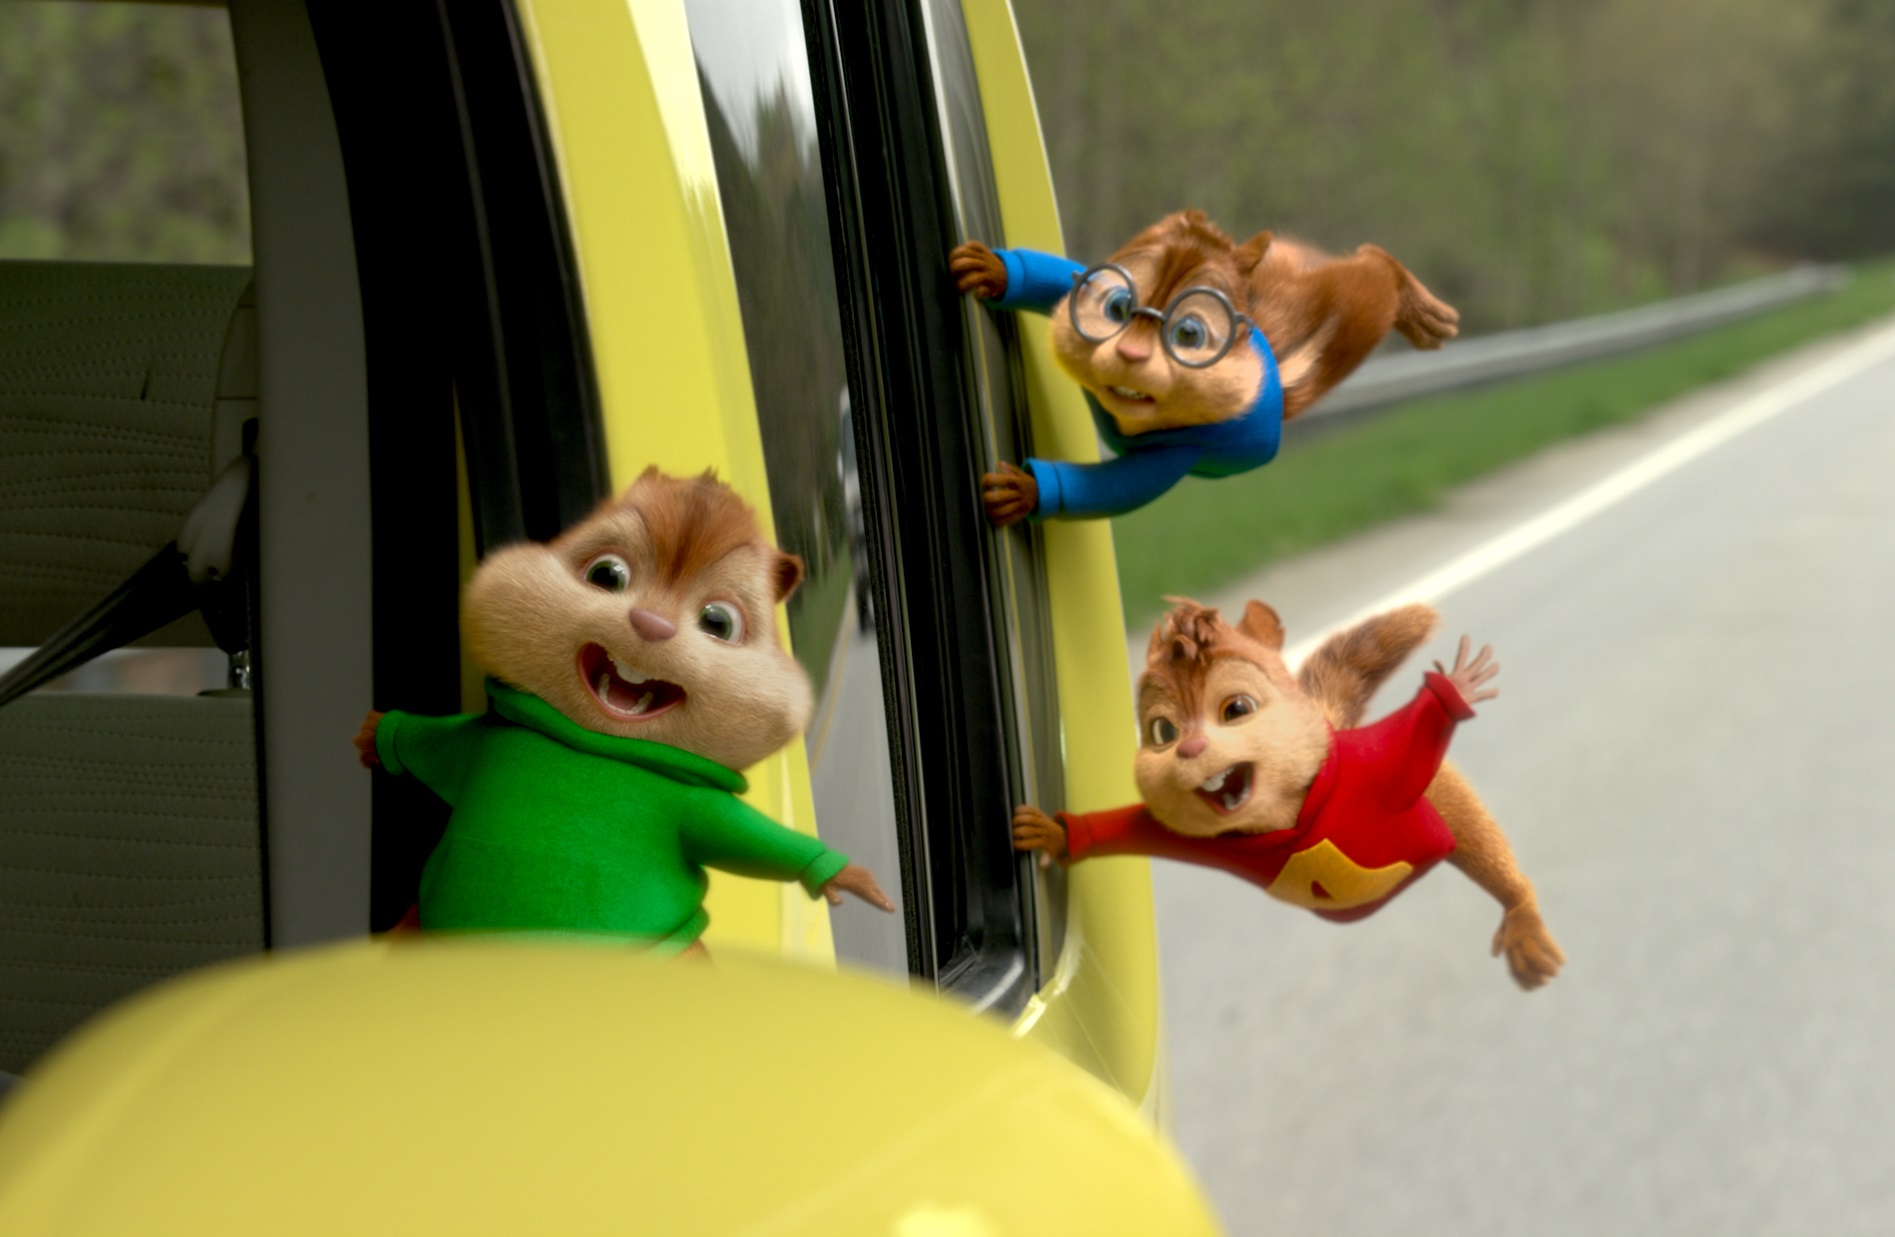 scene from ALVIN AND THE CHIPMUNKS4 - THE ROAD CHIP